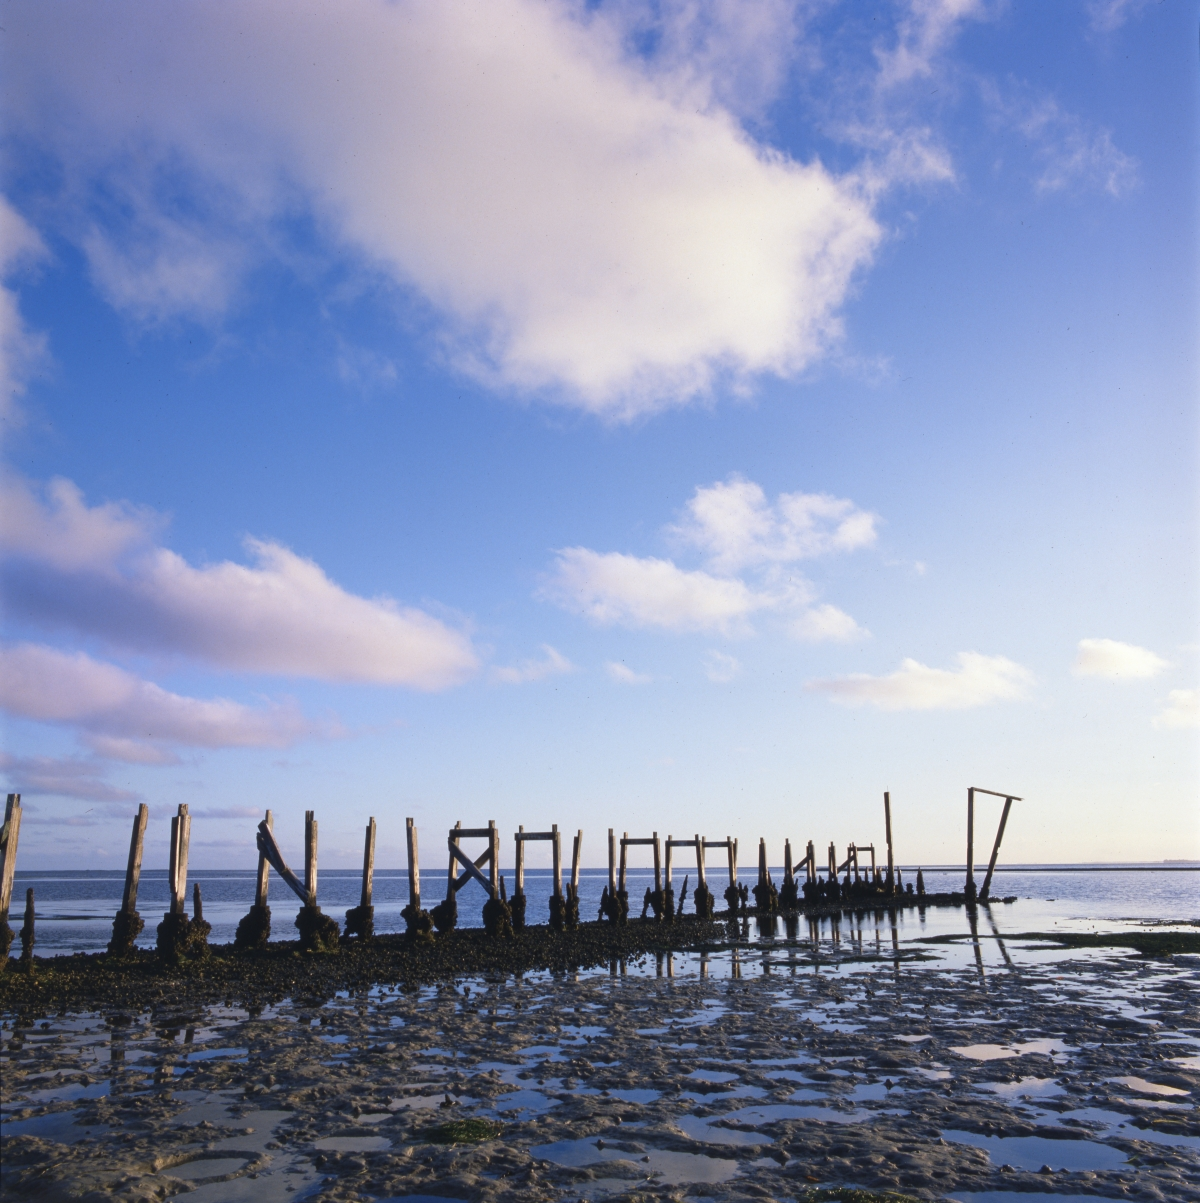 Remains of pier in Saint Marks.